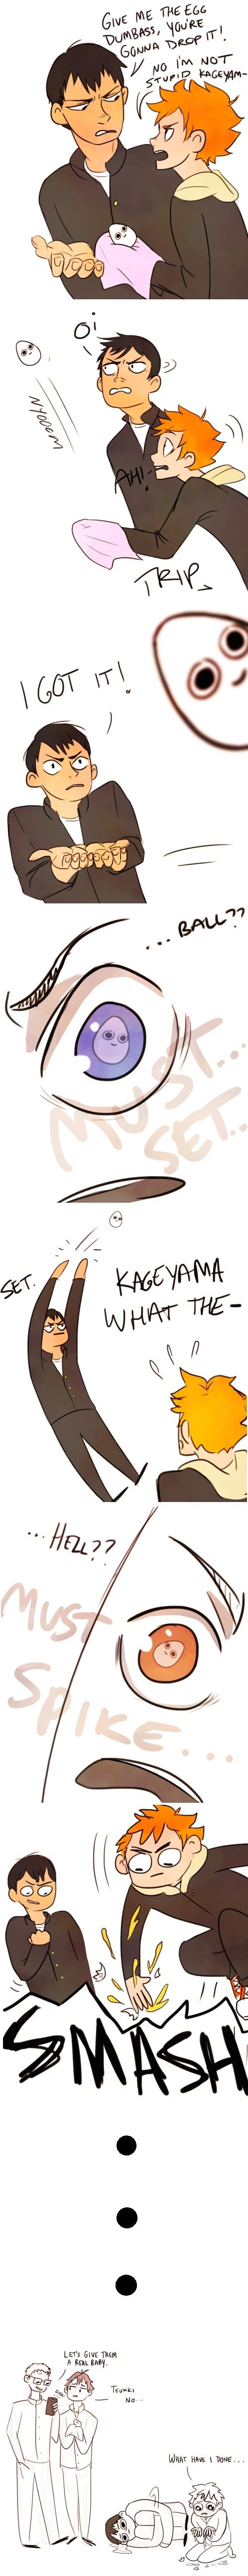 """""""Ball."""" They're like dogs! THIS IS THE BEST THING IVE SEEN IN AWHILE  Haikyuu comic funny (Tumblr: Spatziline) / Kageyama / Hinata / hq / karasuno"""